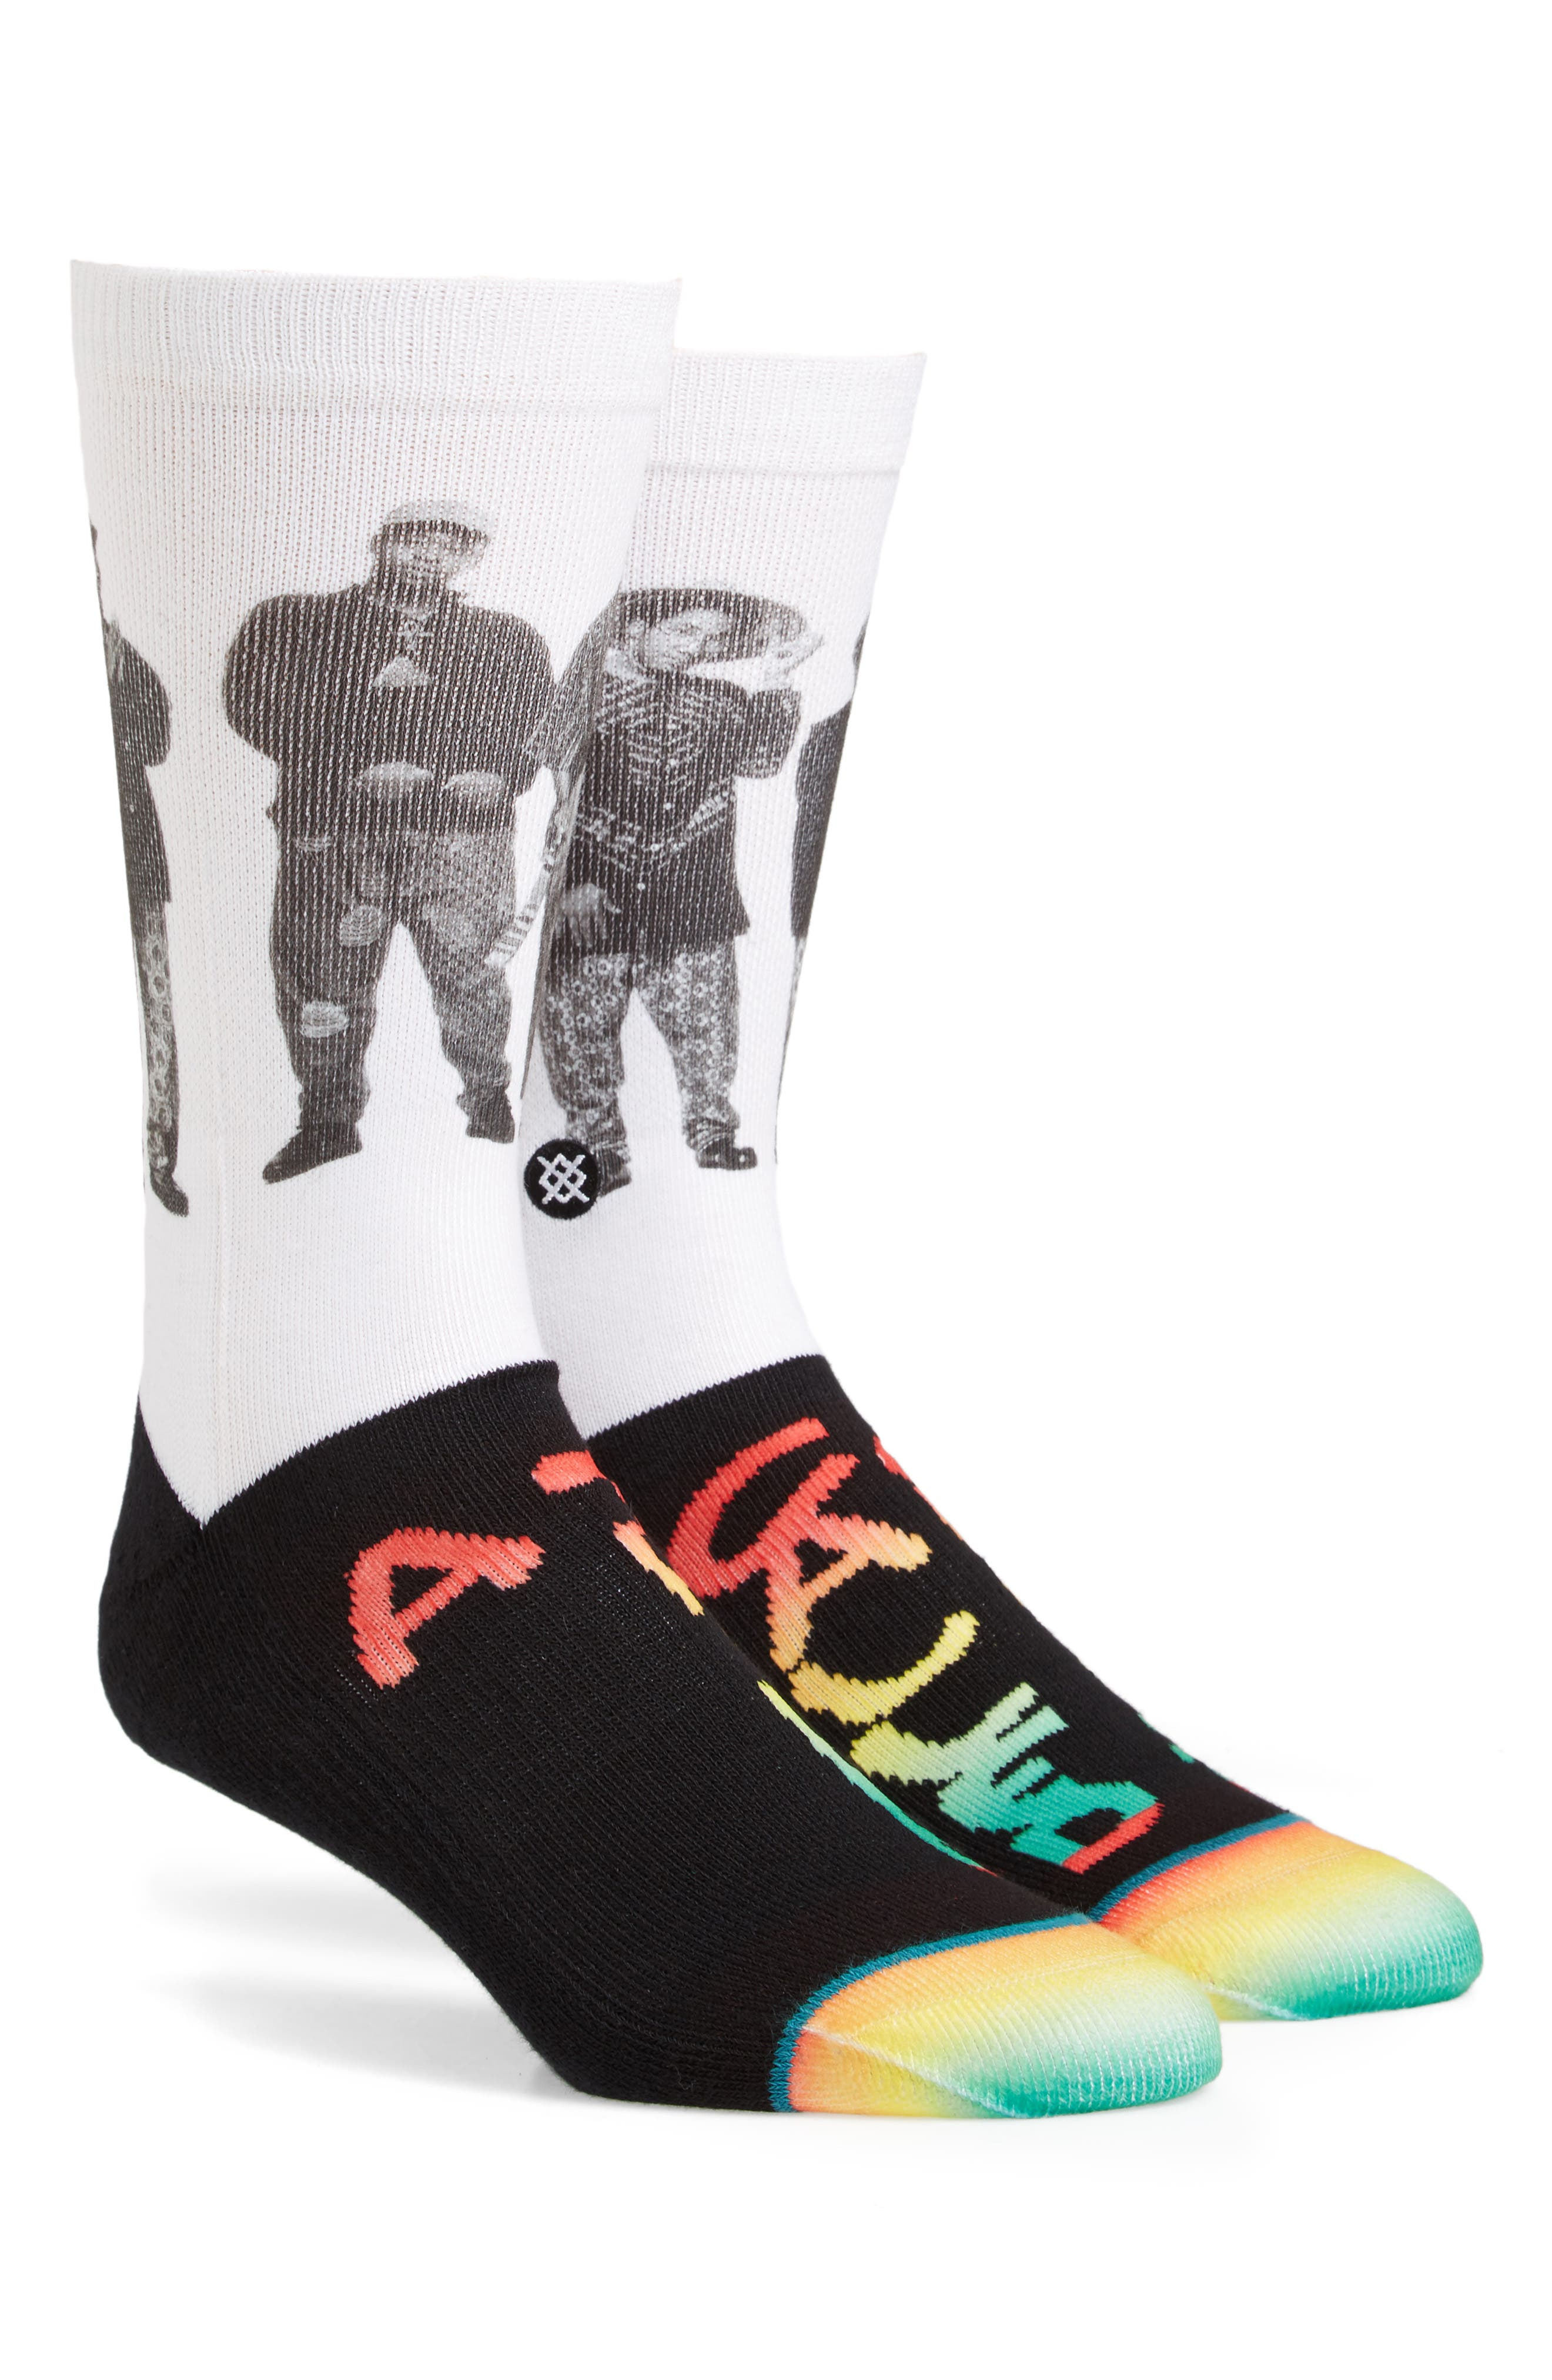 Main Image - Stance A Tribe Called Quest Crew Socks